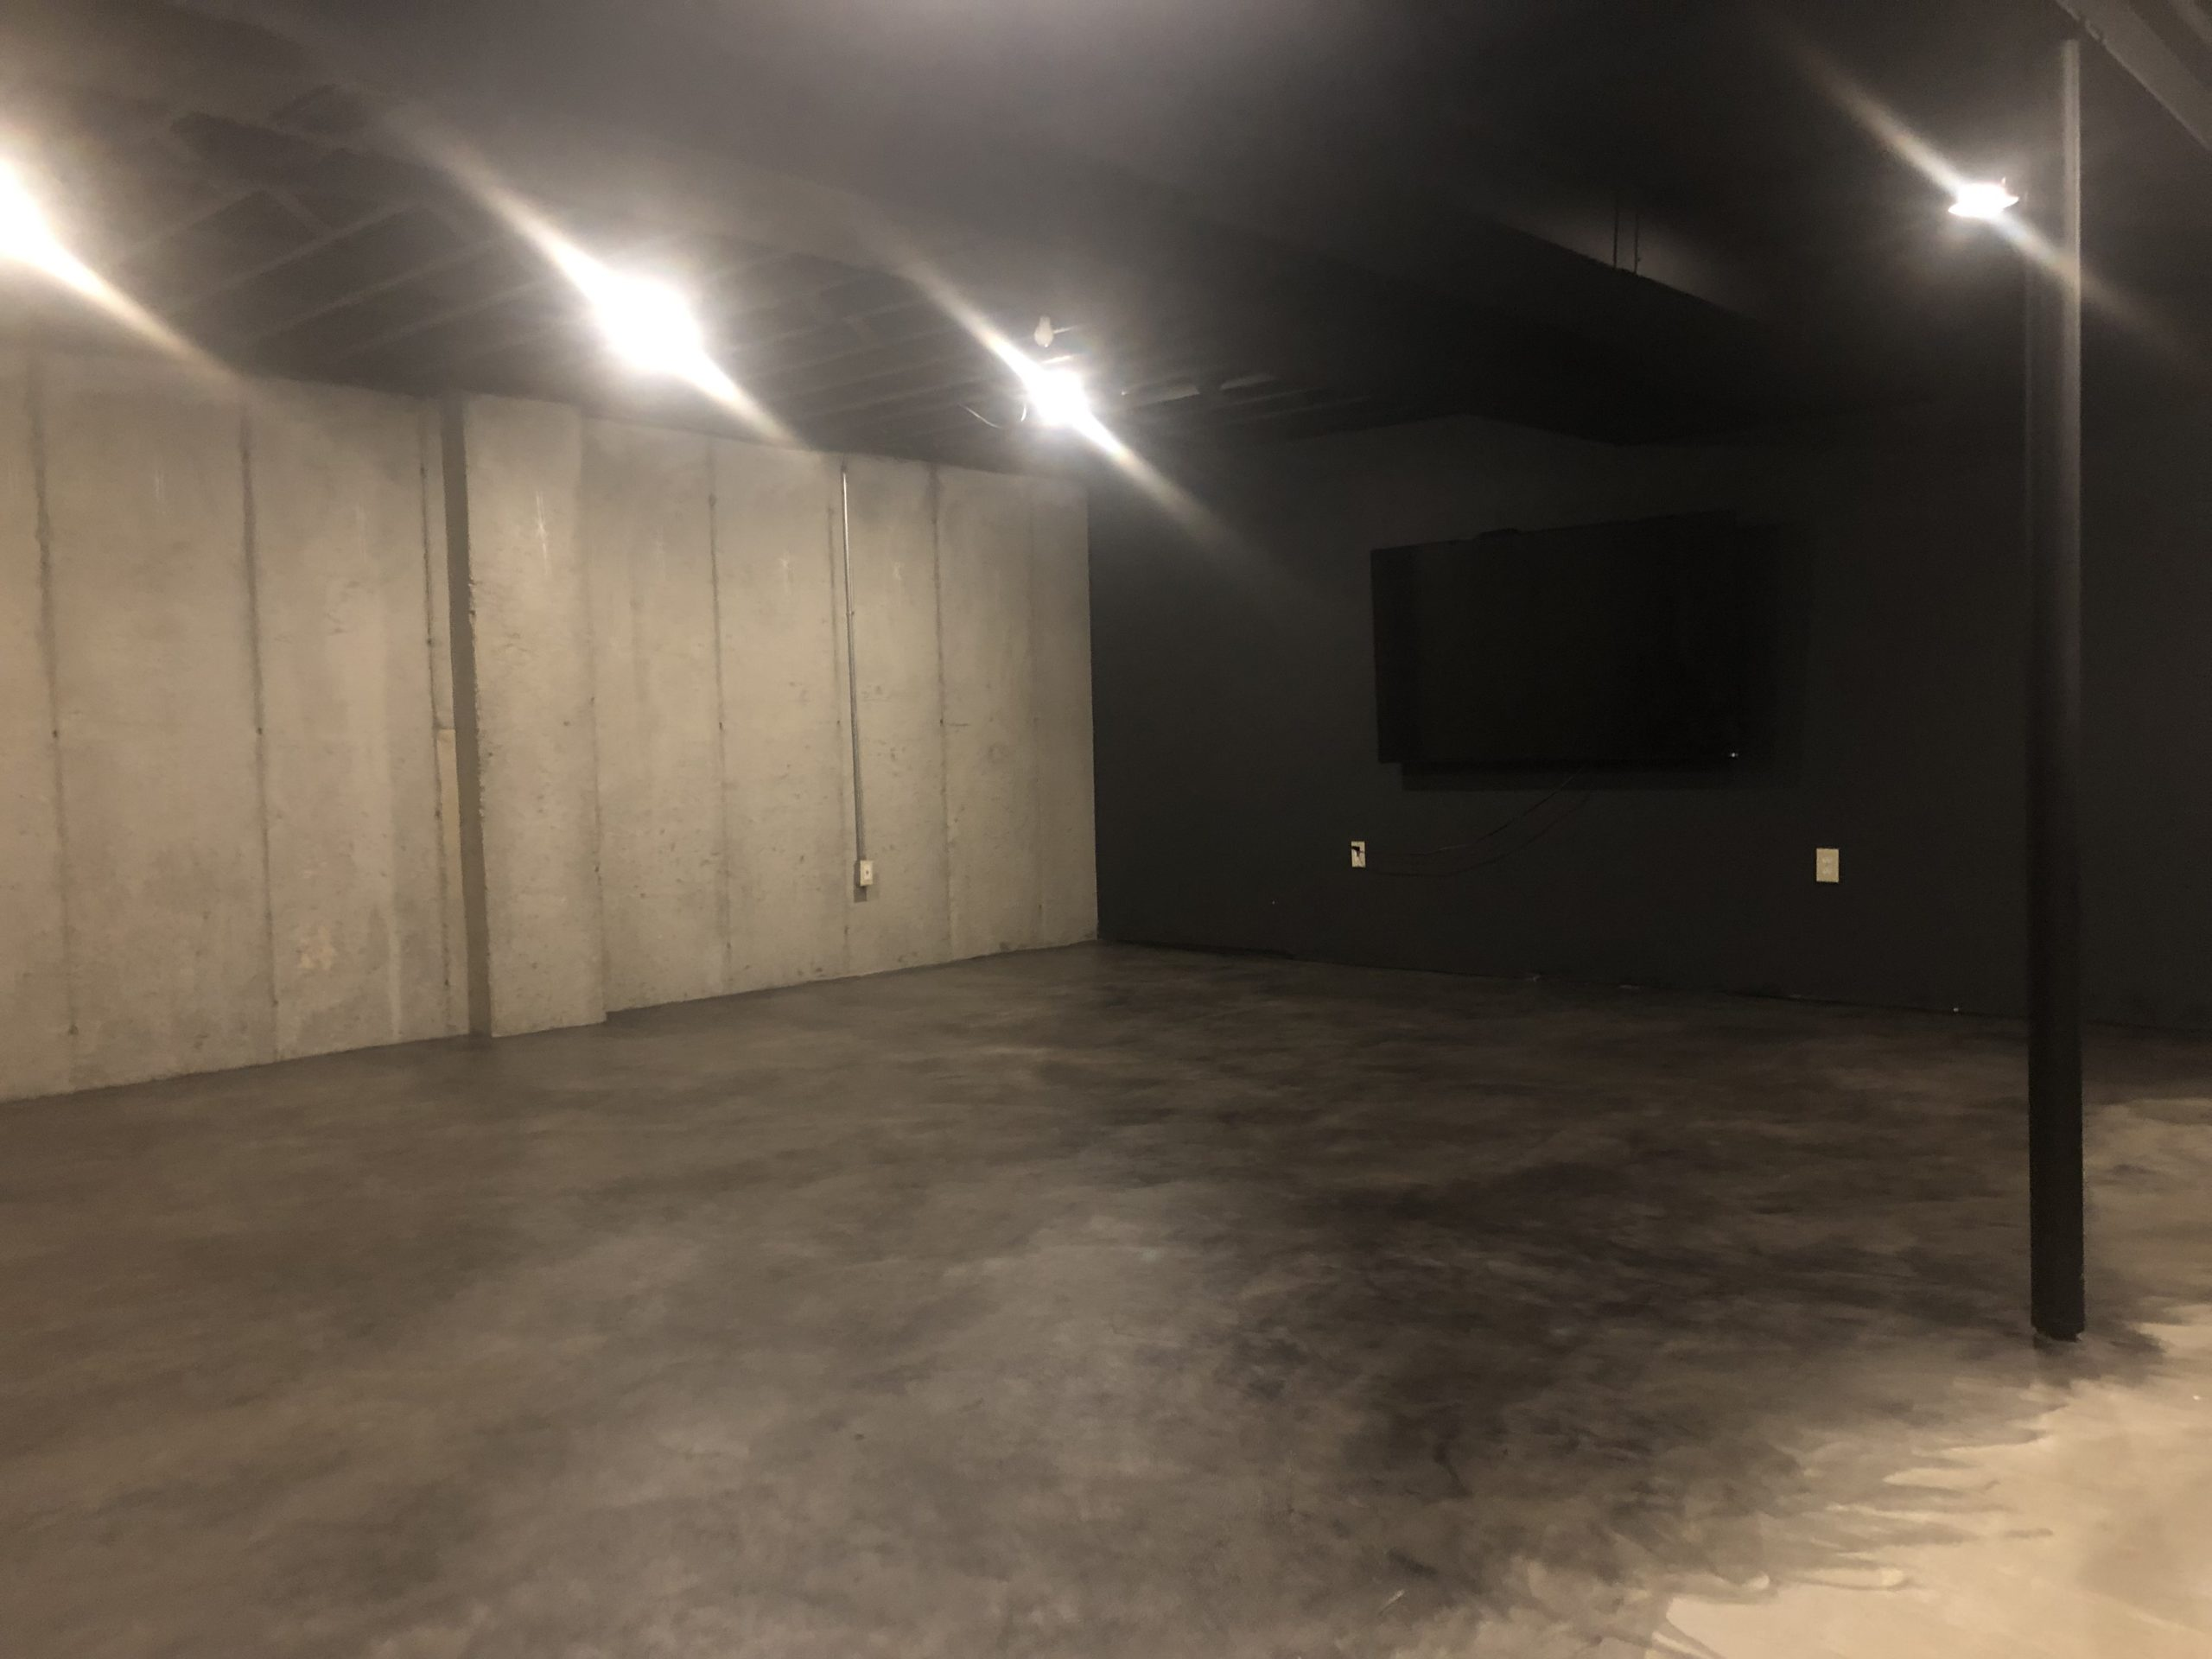 After second coat: how to stain concrete floors - diy basement upgrade for cheap